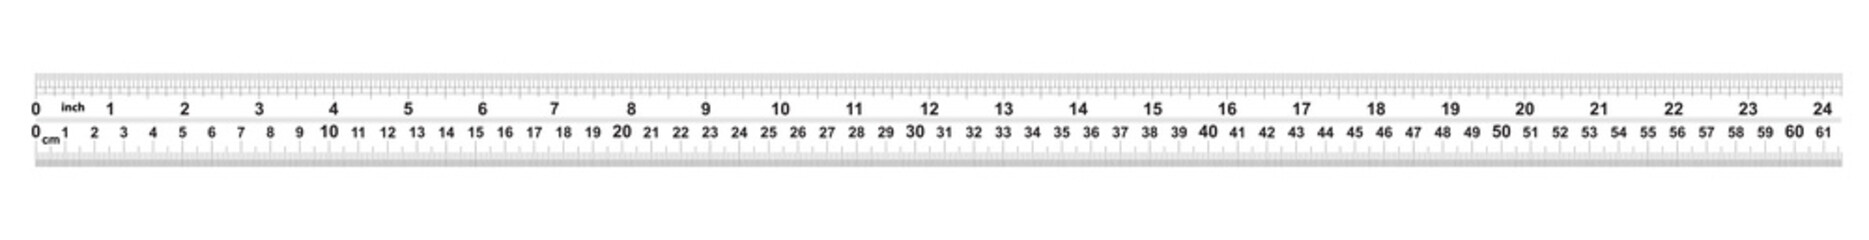 Ruler 24 inshes. Ruler 60 centimeters. Value of division - 32 divisions by inch and 0.5 mm. Precise length measurement device. Calibration grid.